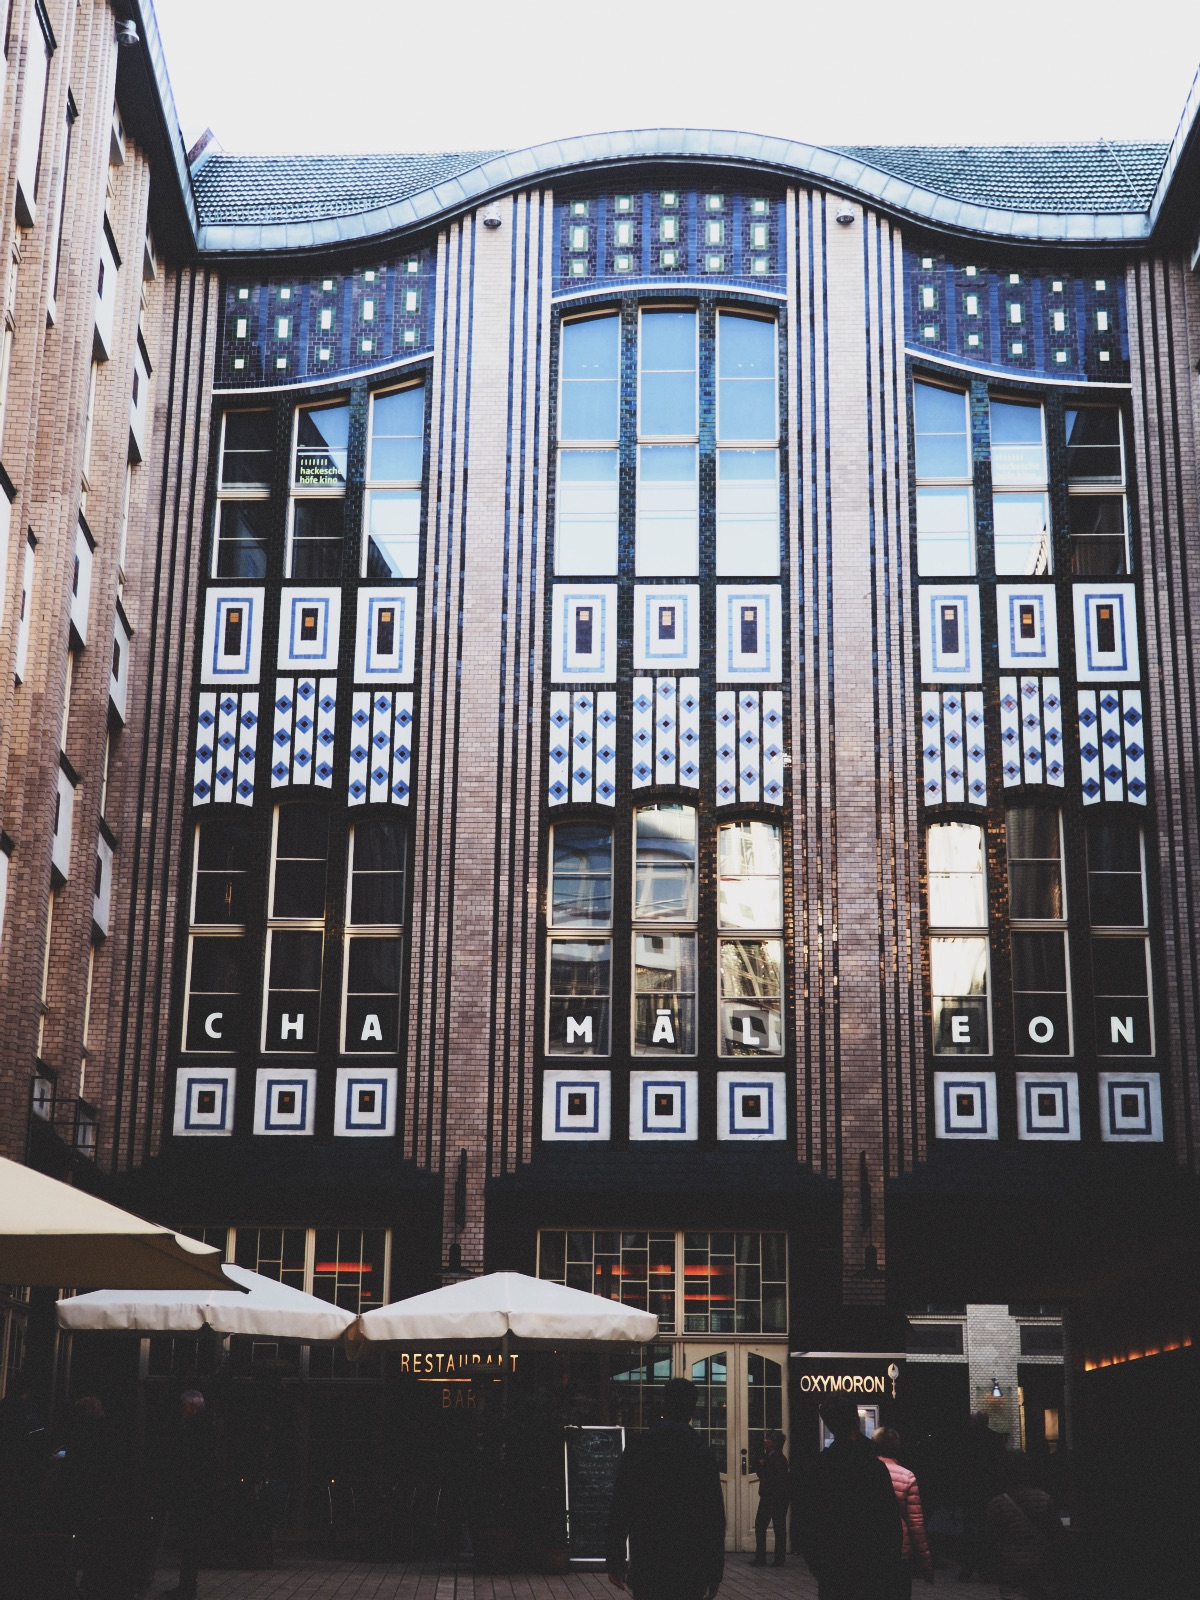 Alternative Things To Do In Berlin: Chamaeleon Theatre